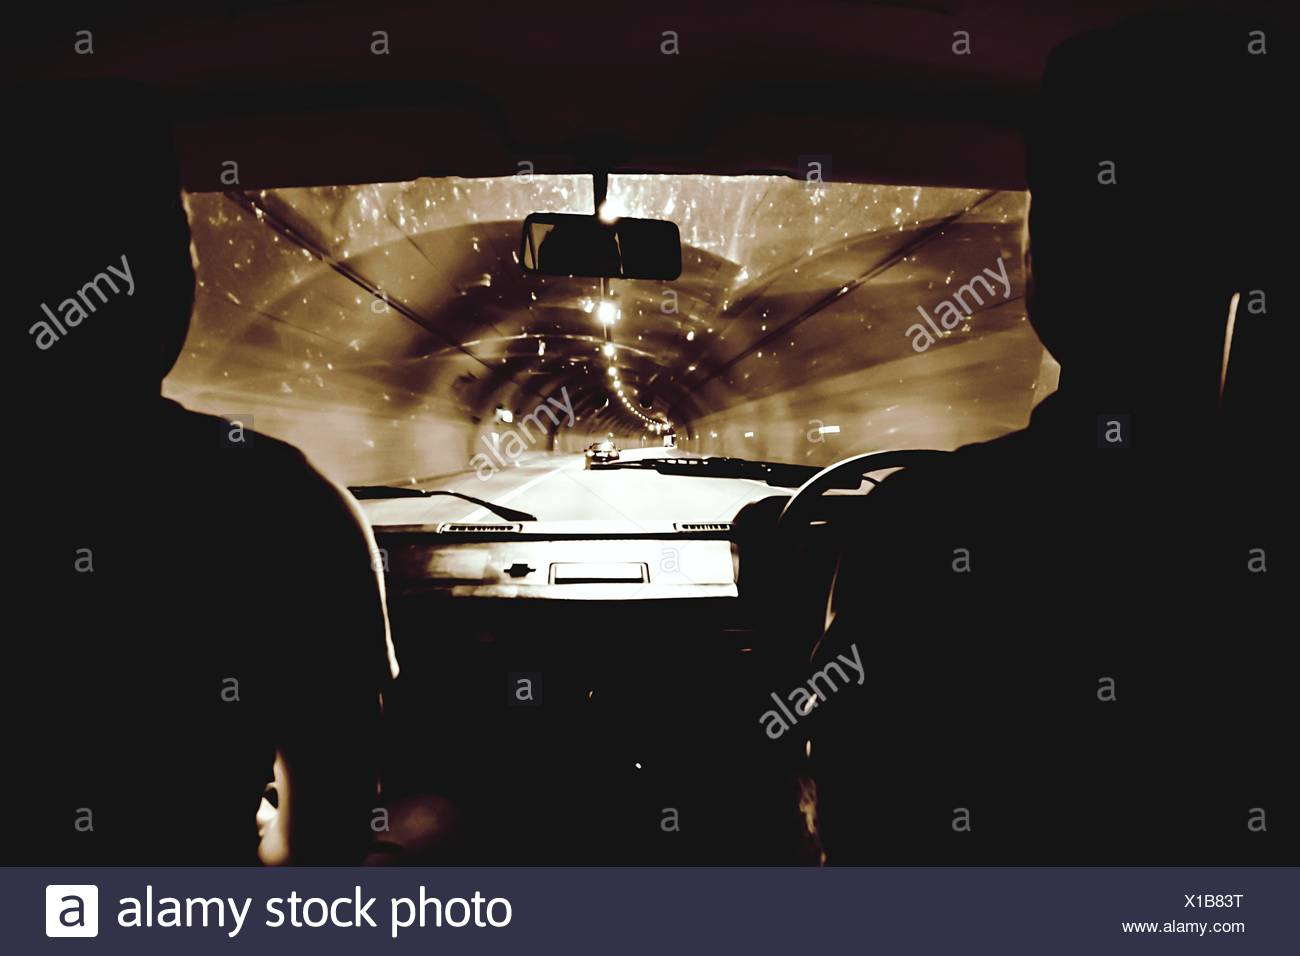 Silhouette People Driving Car In Illuminated Tunnel - Stock Image